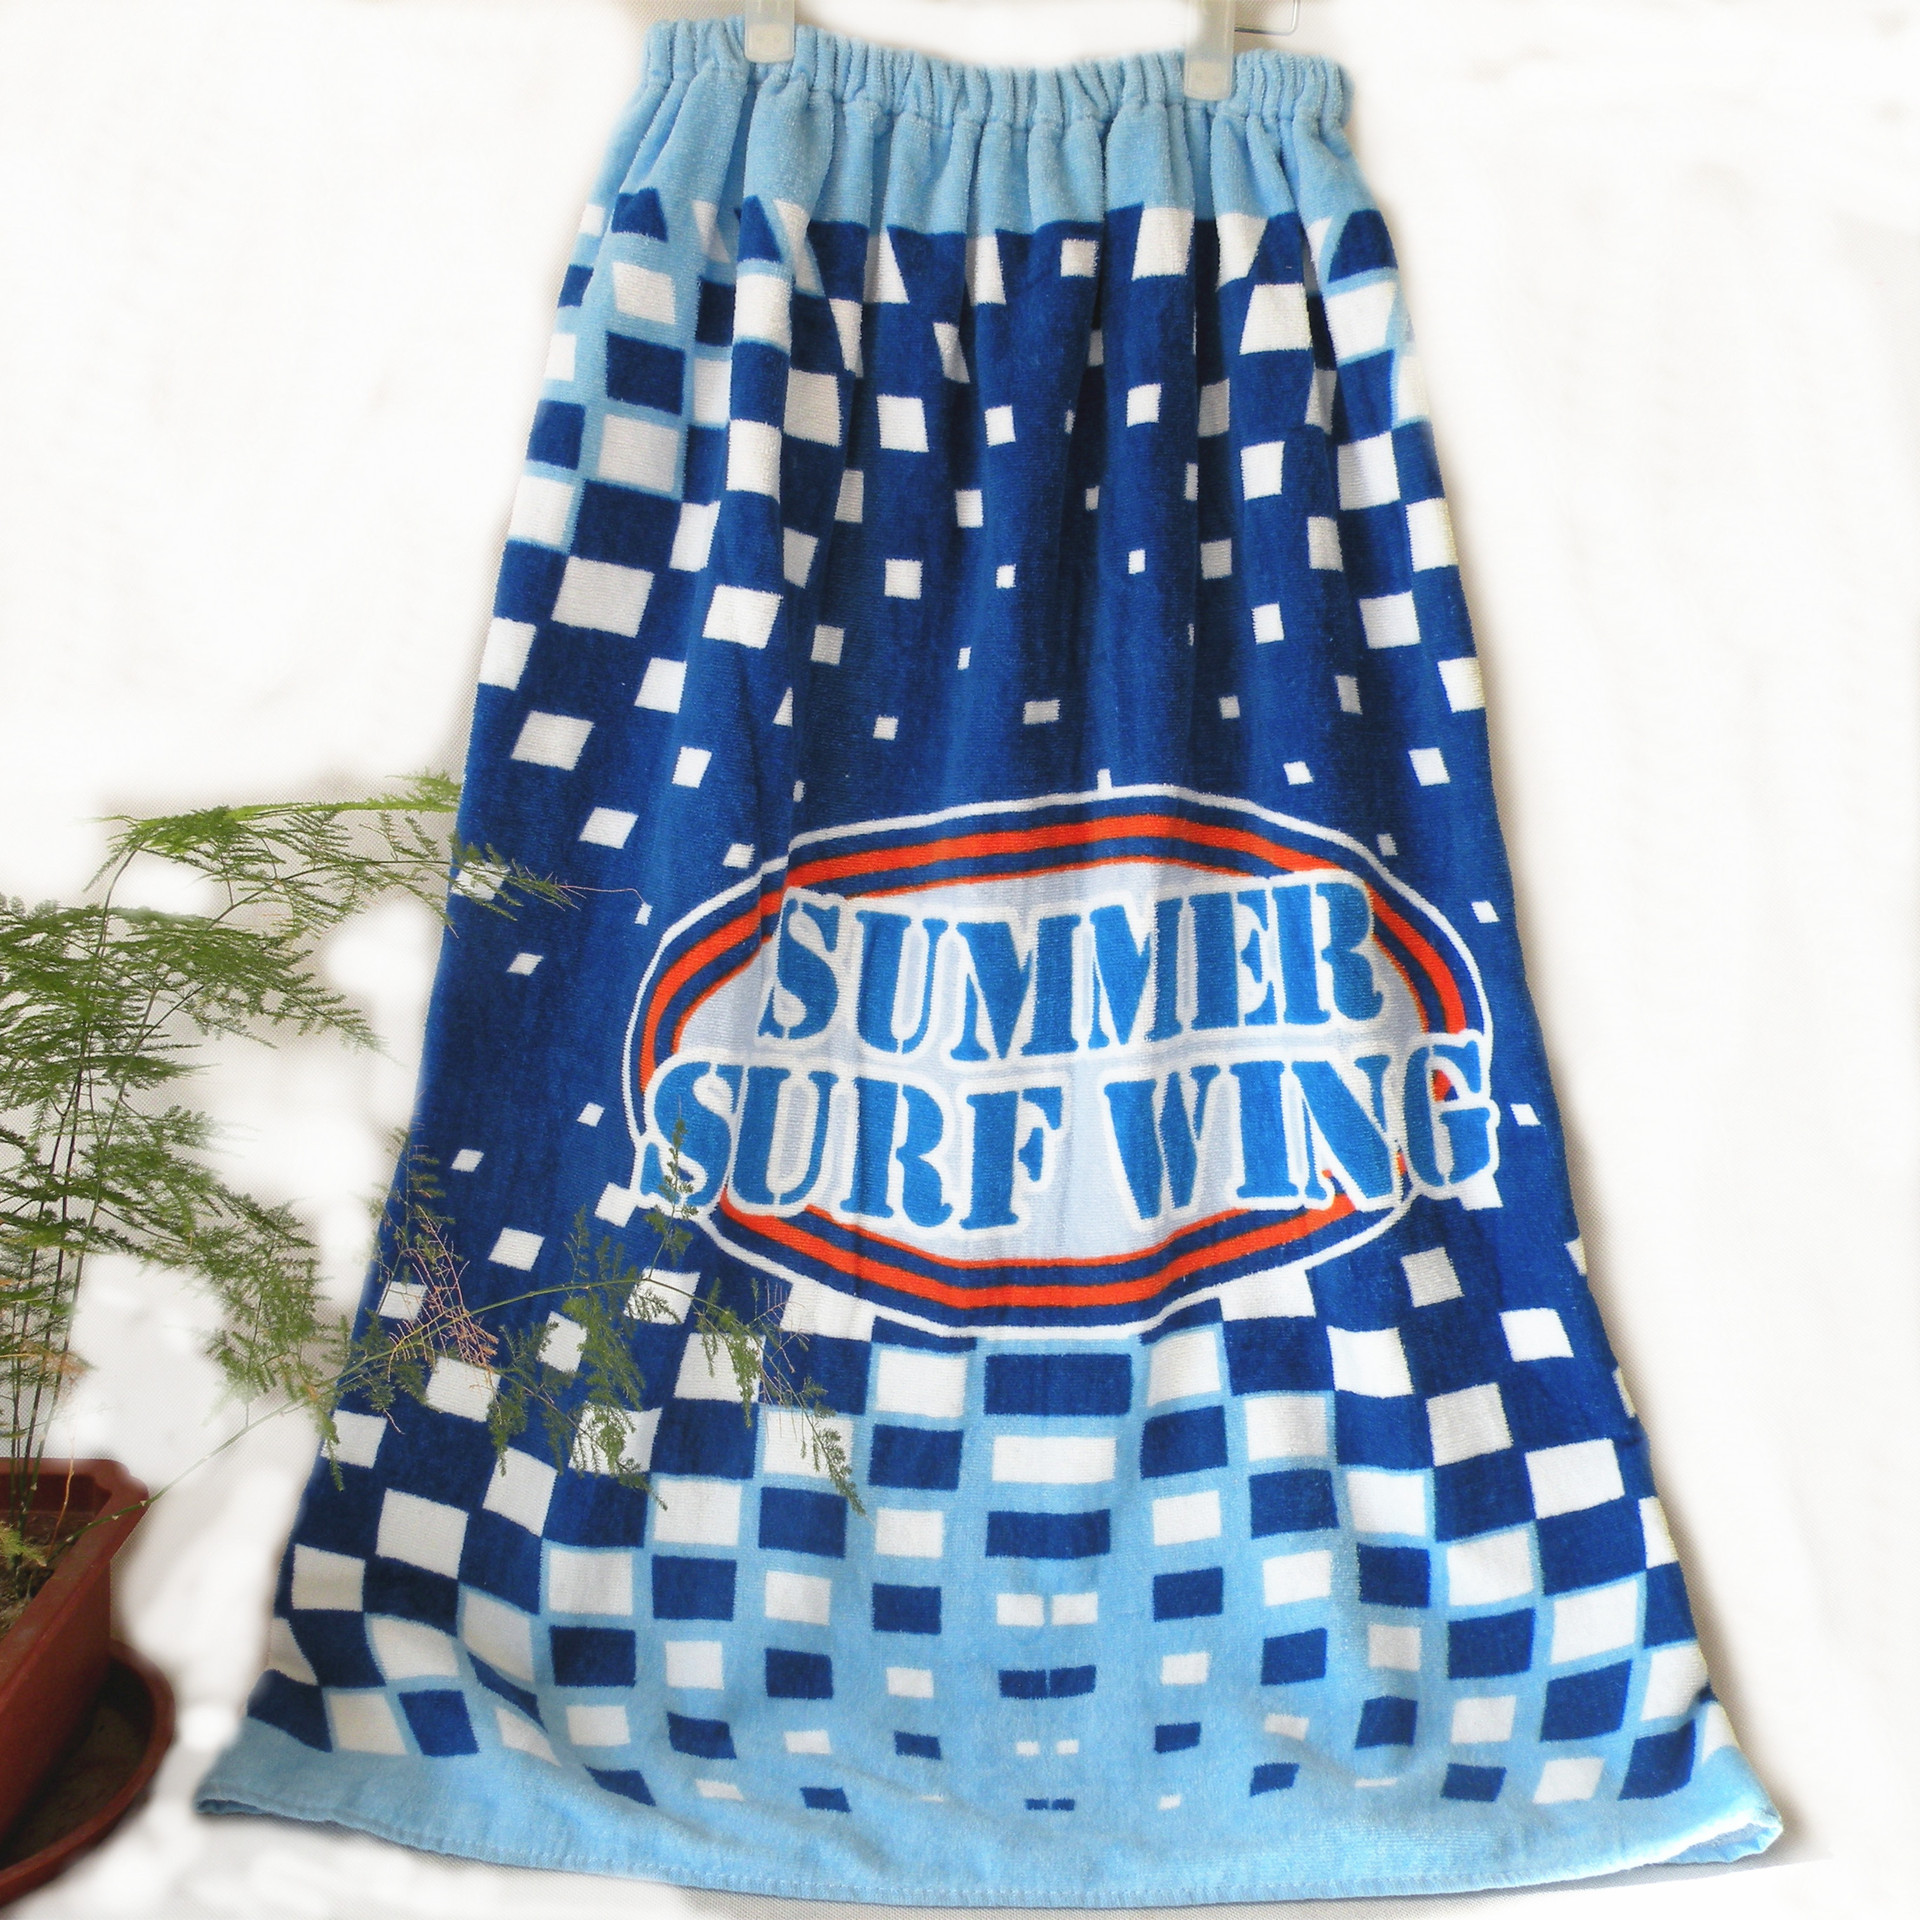 FREE SHIPPING Vosges towel factory wholesale summer surf wing blue box men's Cotton Bath skirt Cotton Apron(China (Mainland))